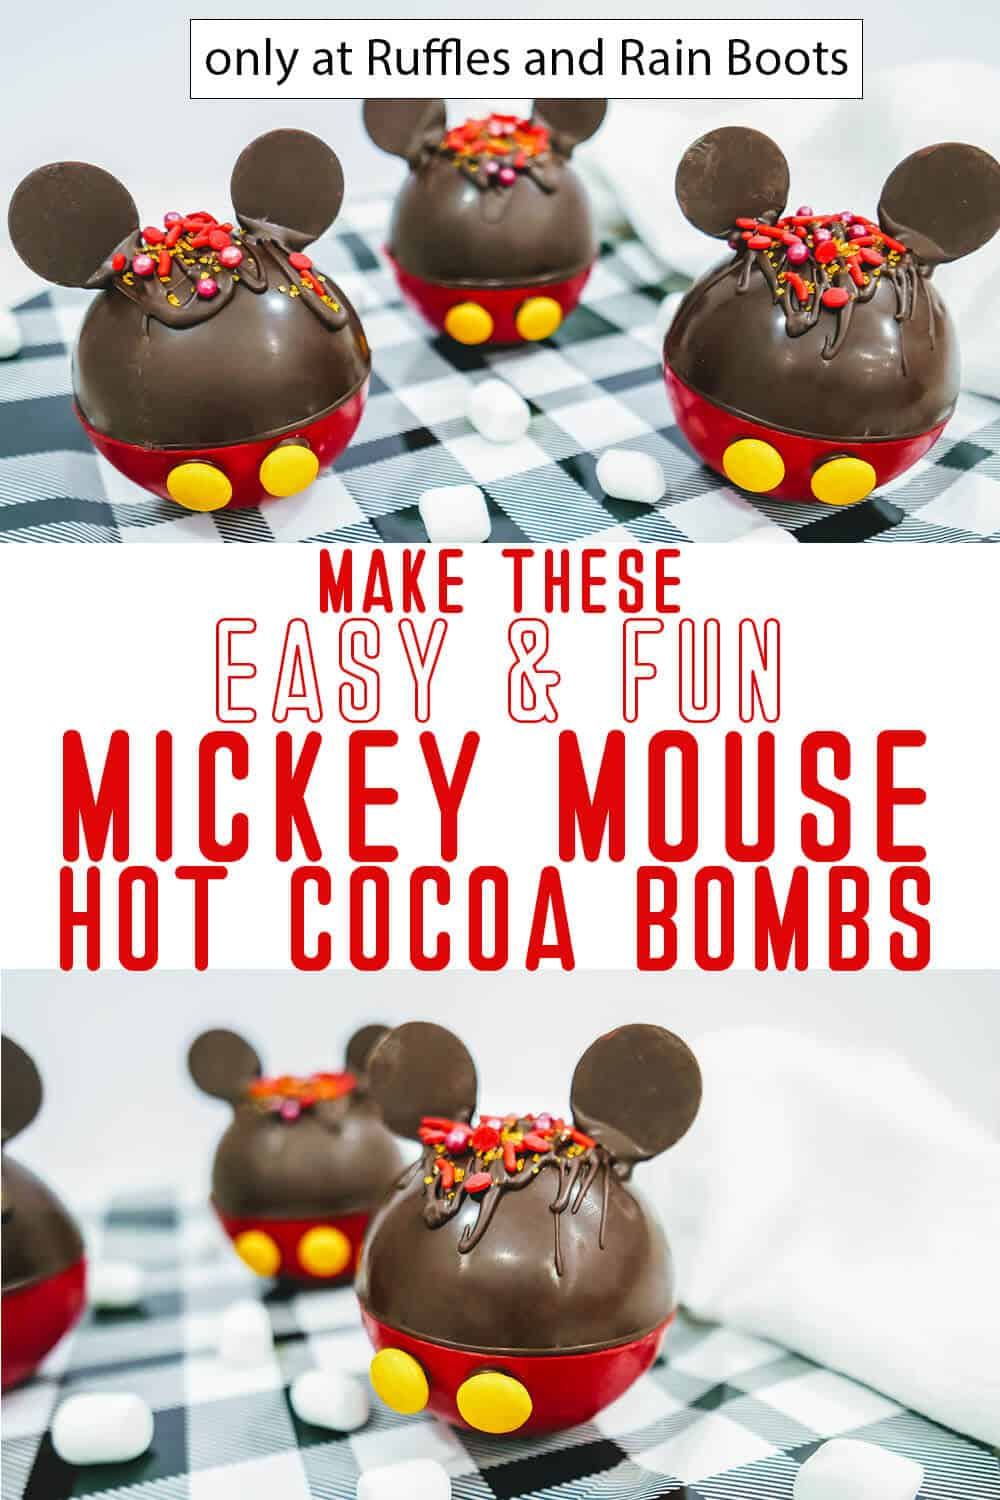 photo collage of DIY Mickey Mouse chocolate Bombs with text which reads make these easy & fun mickey mouse hot cocoa bombs